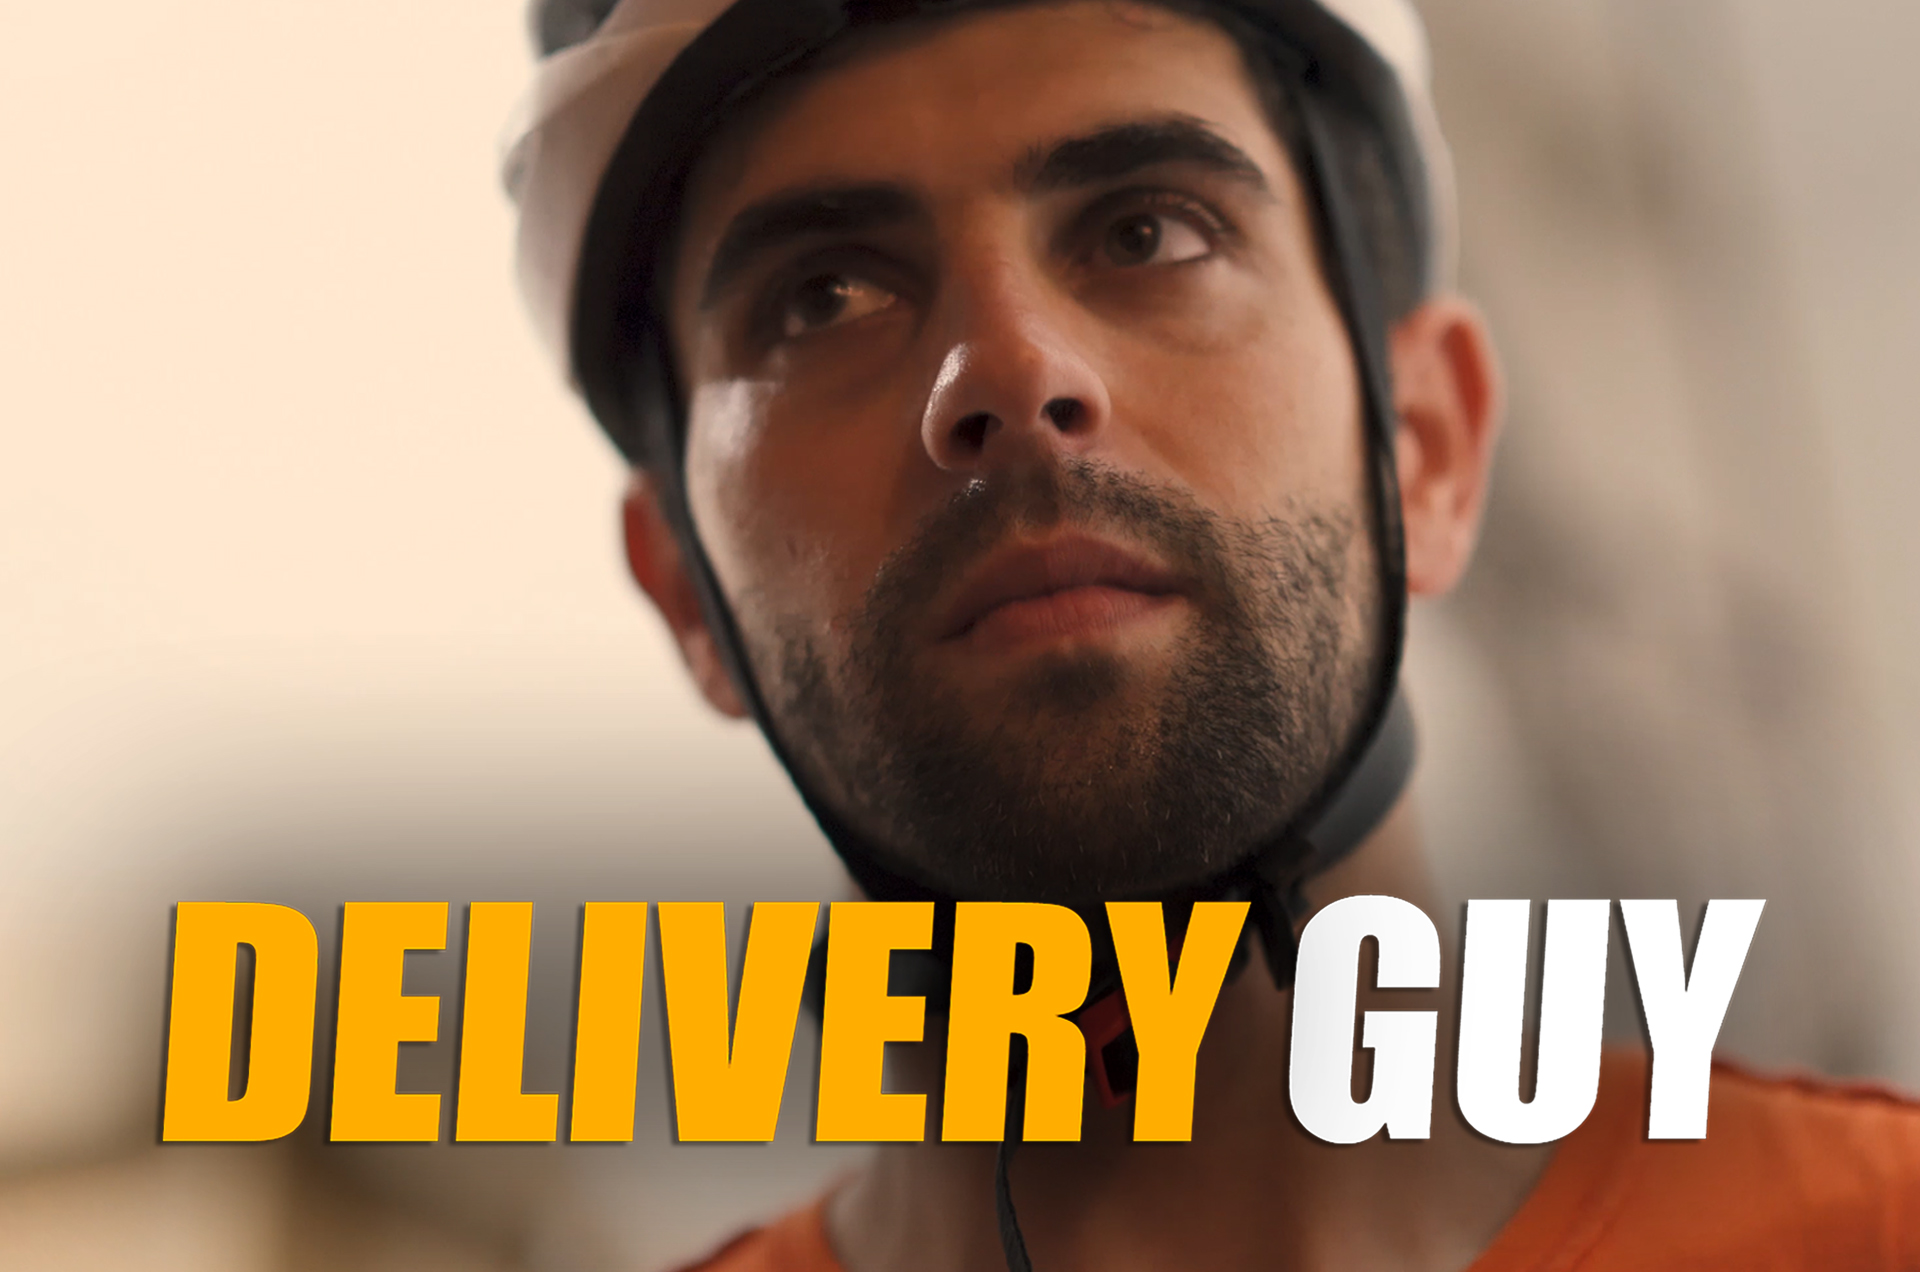 THE DELIVERY GUY | My RODE Reel 2020